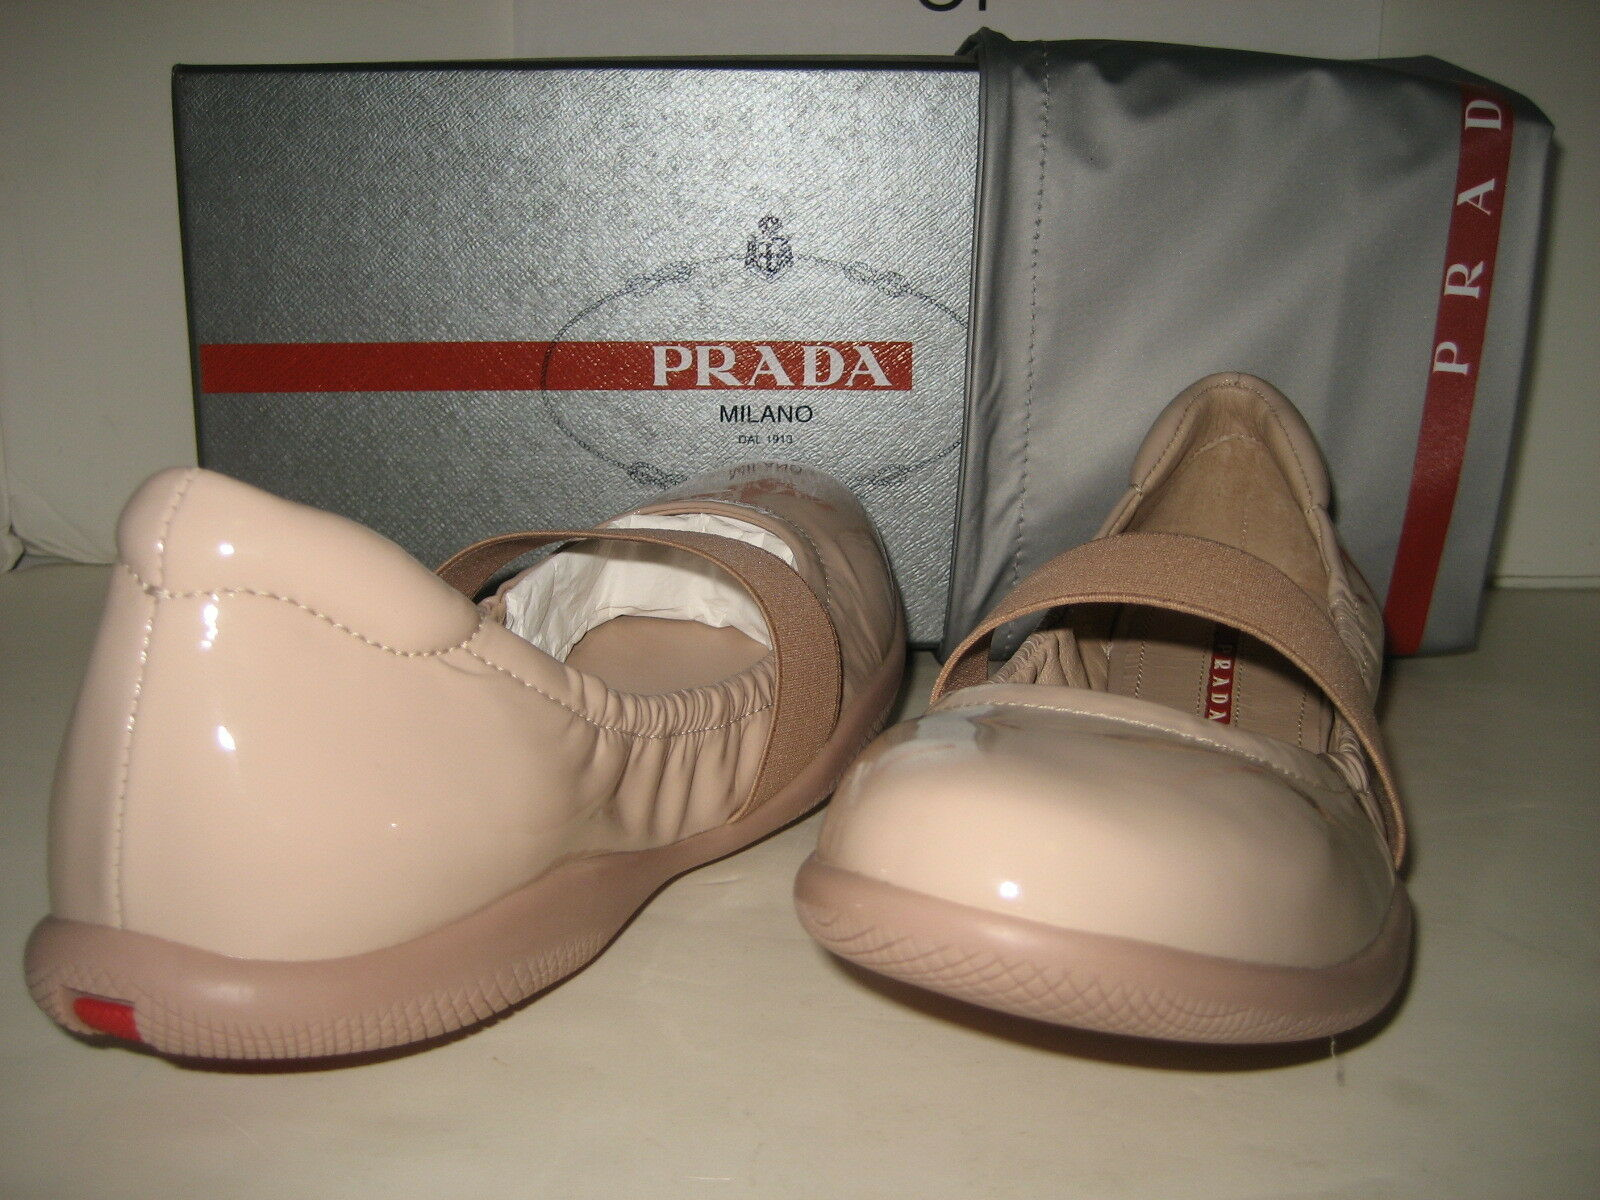 390 NEW PRADA Women US 9.5 Nude Patent Leather Ballet Flats Slip On shoes BOX